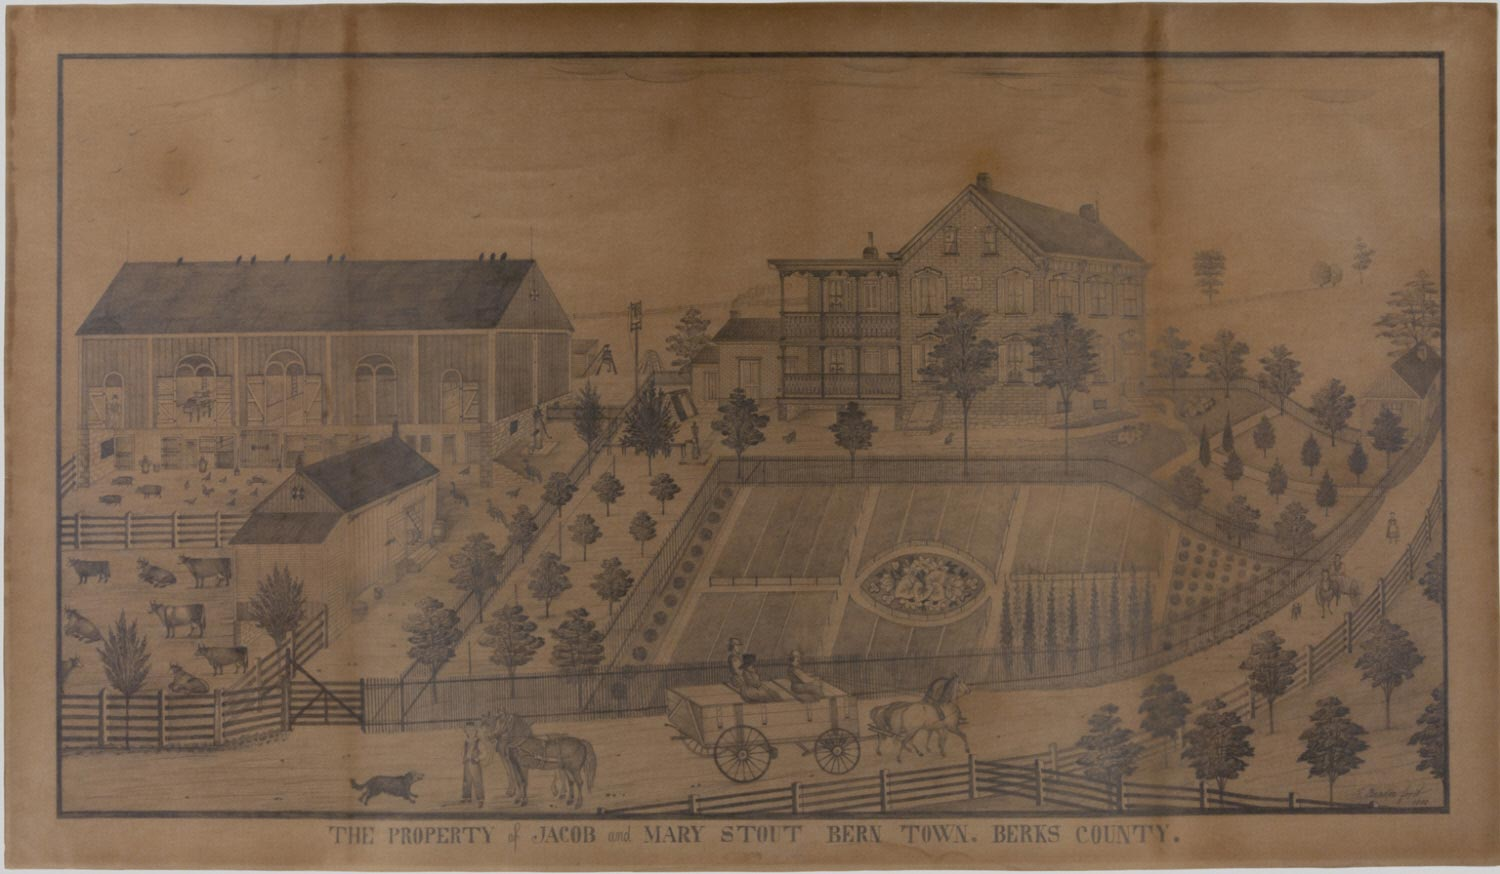 The Property of Jacob and Mary Stout, Bern Town, Berks County, Pennsylvania